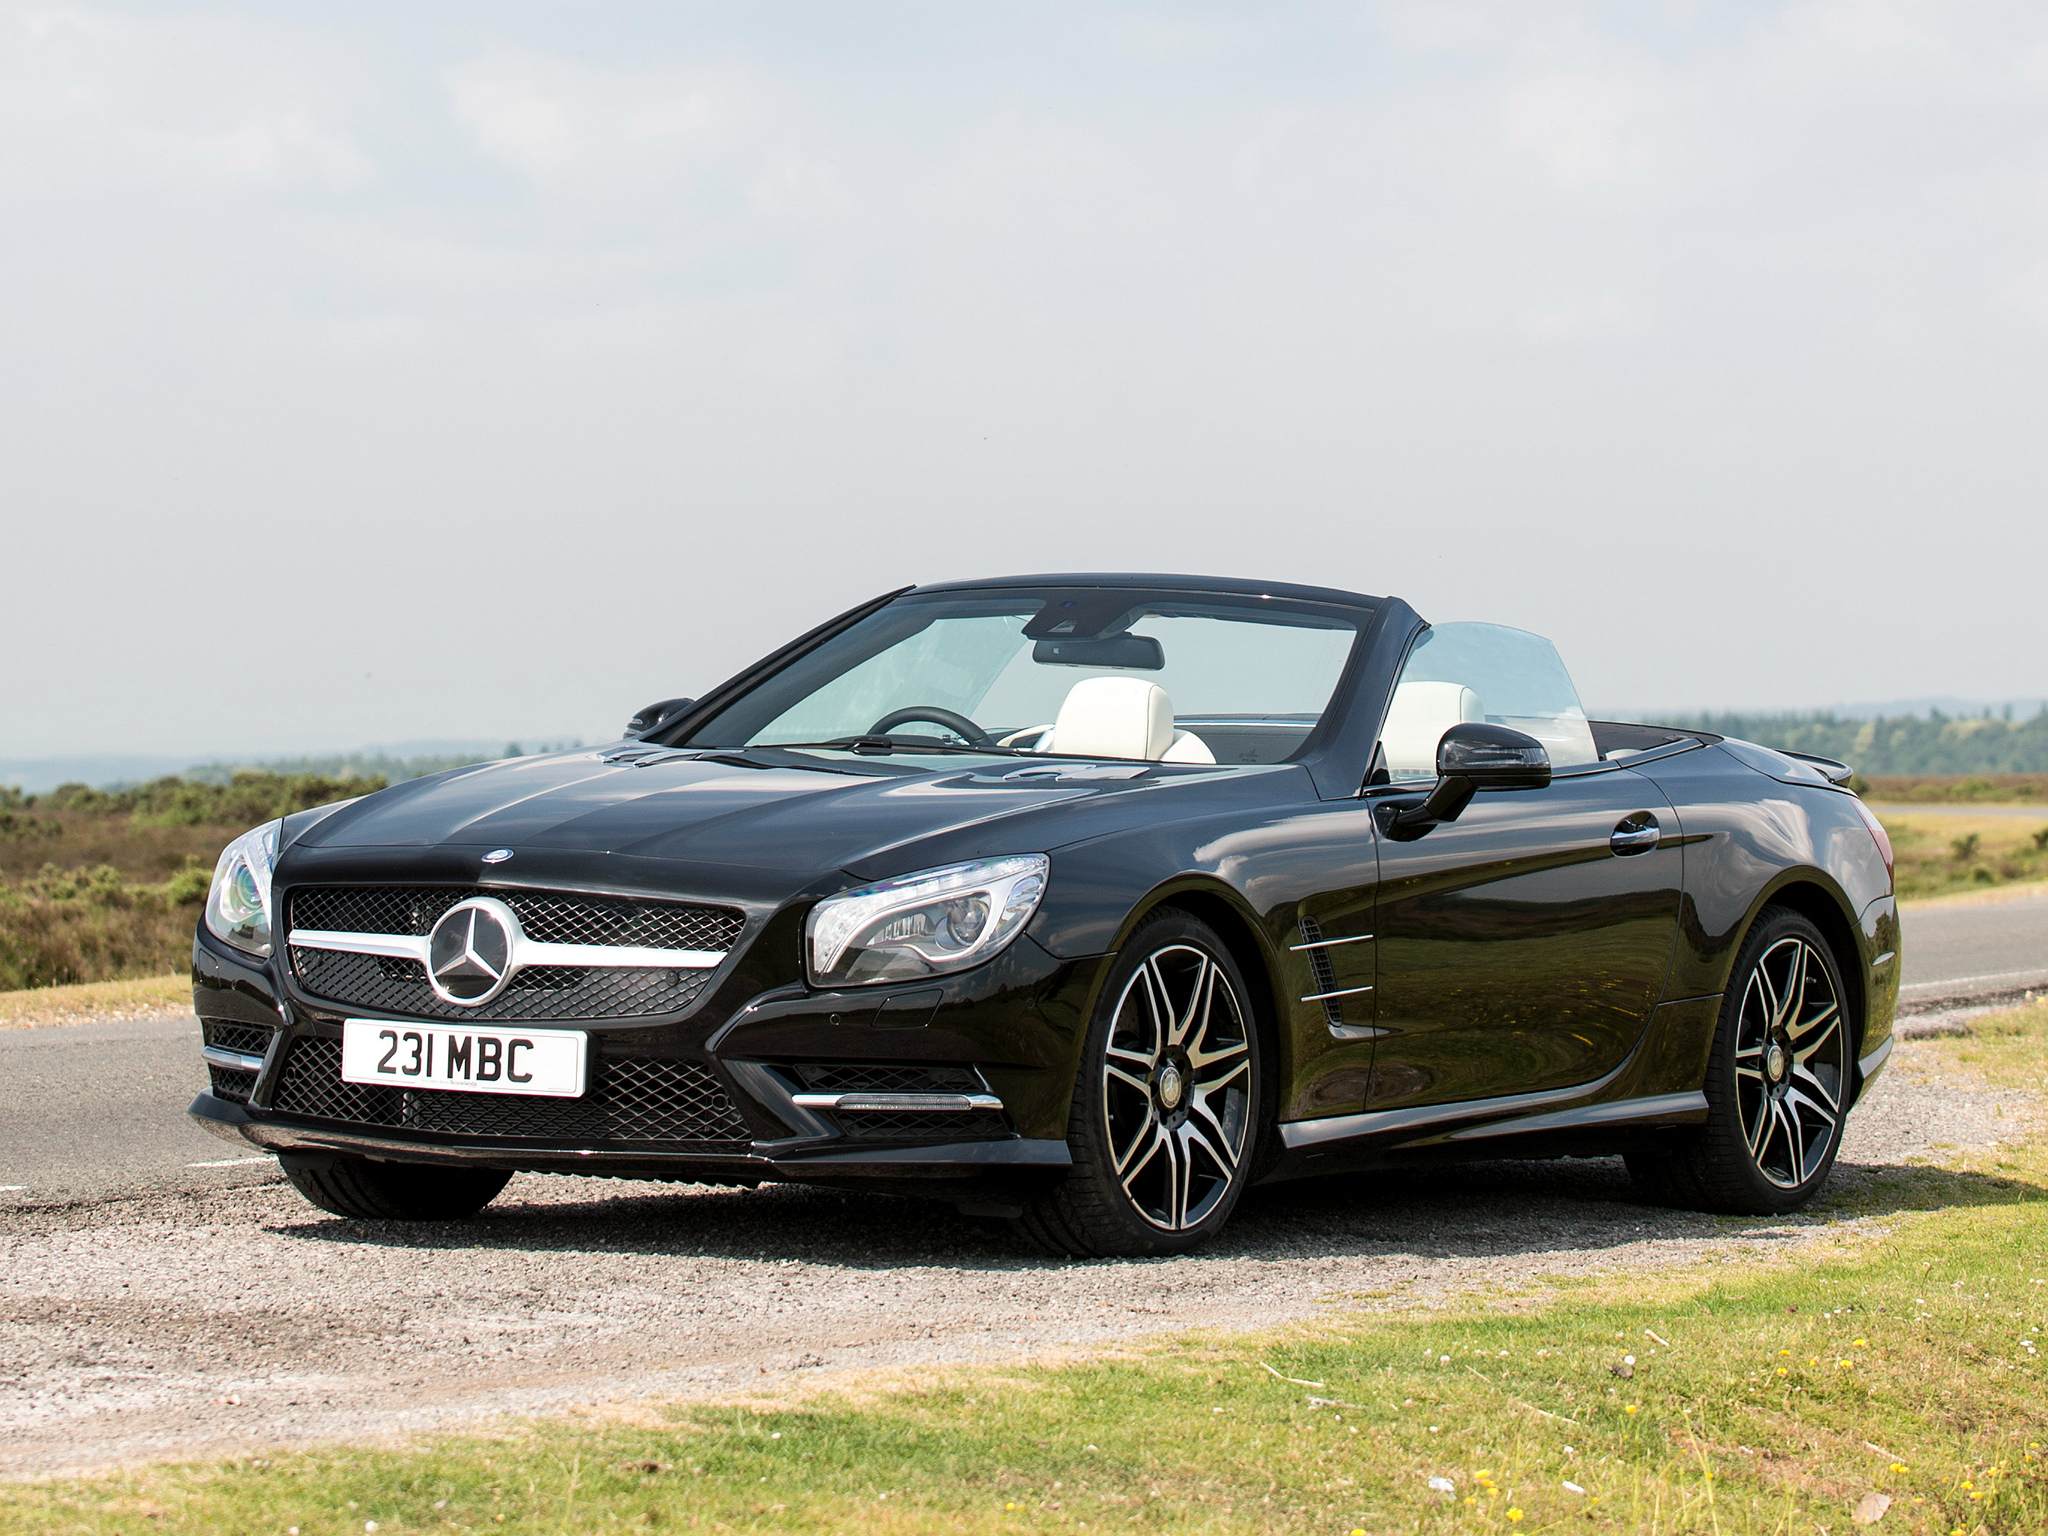 Us spec mercedes benz sl 400 coming with 329 hp 27 mpg for Mercedes benz mercedes benz mercedes benz